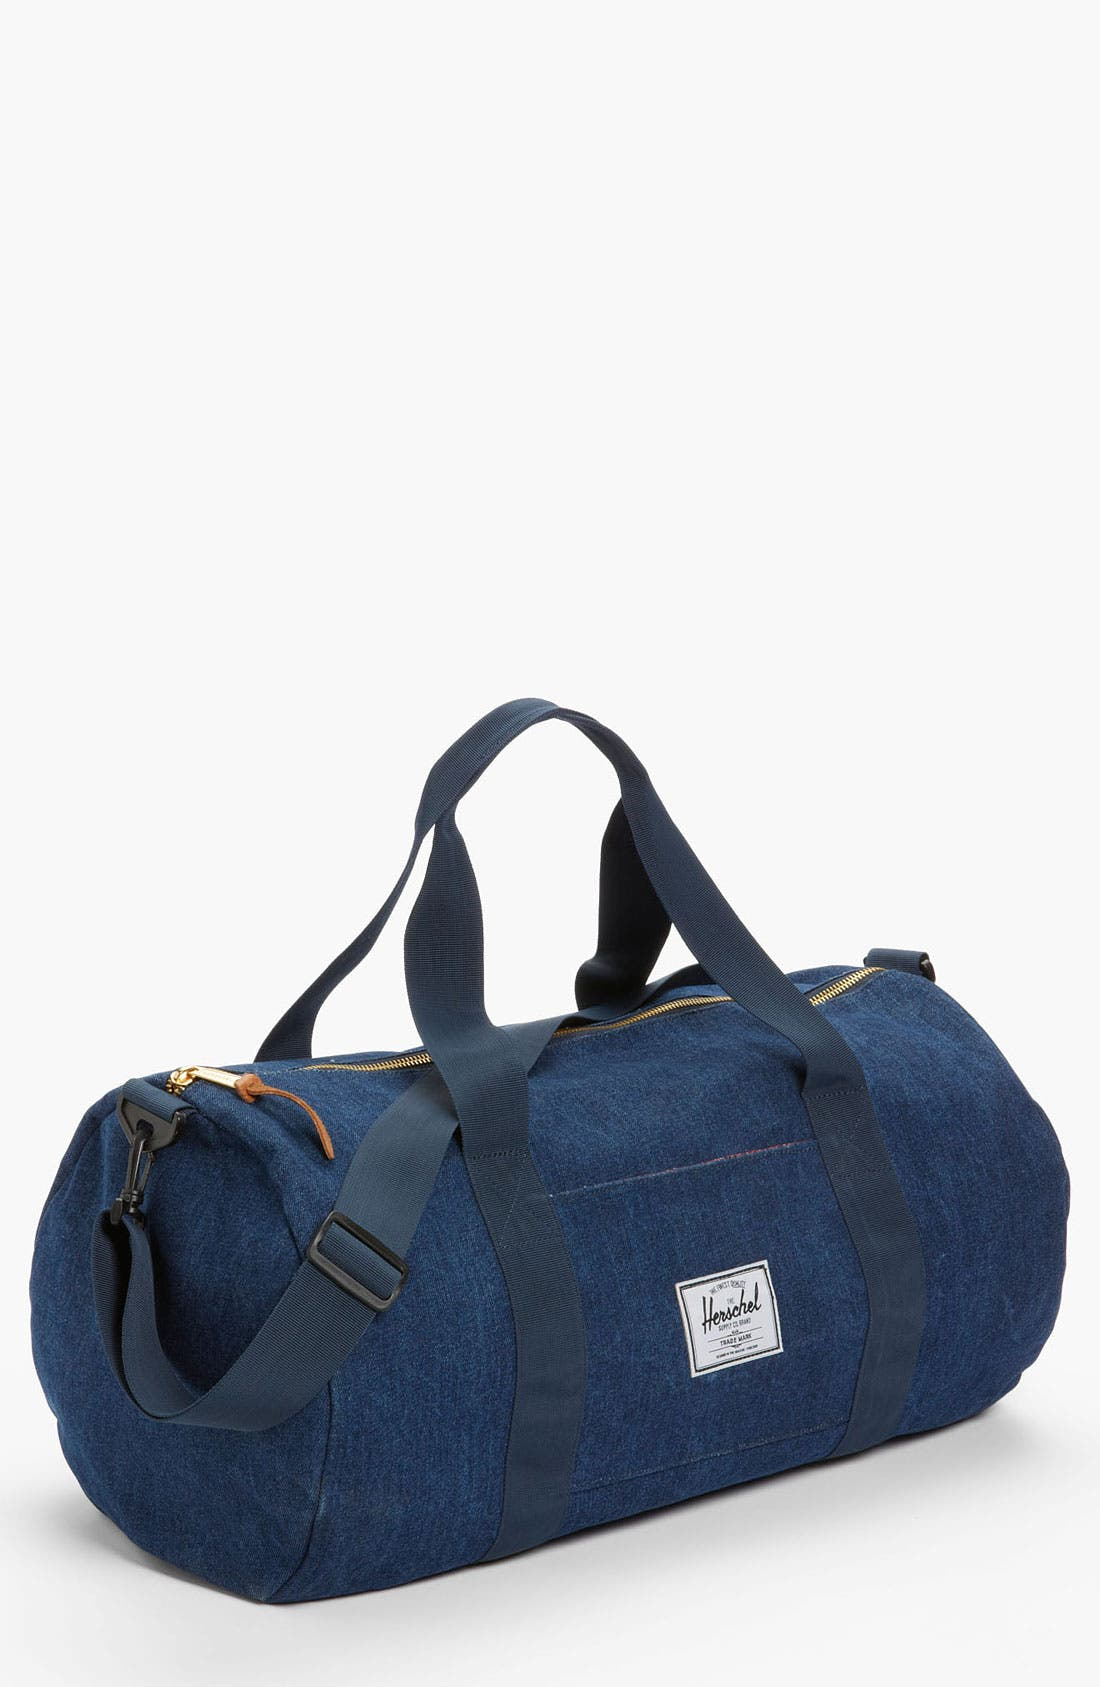 Main Image - Herschel Supply Co. 'Sutton - Denim Collection' Duffel Bag